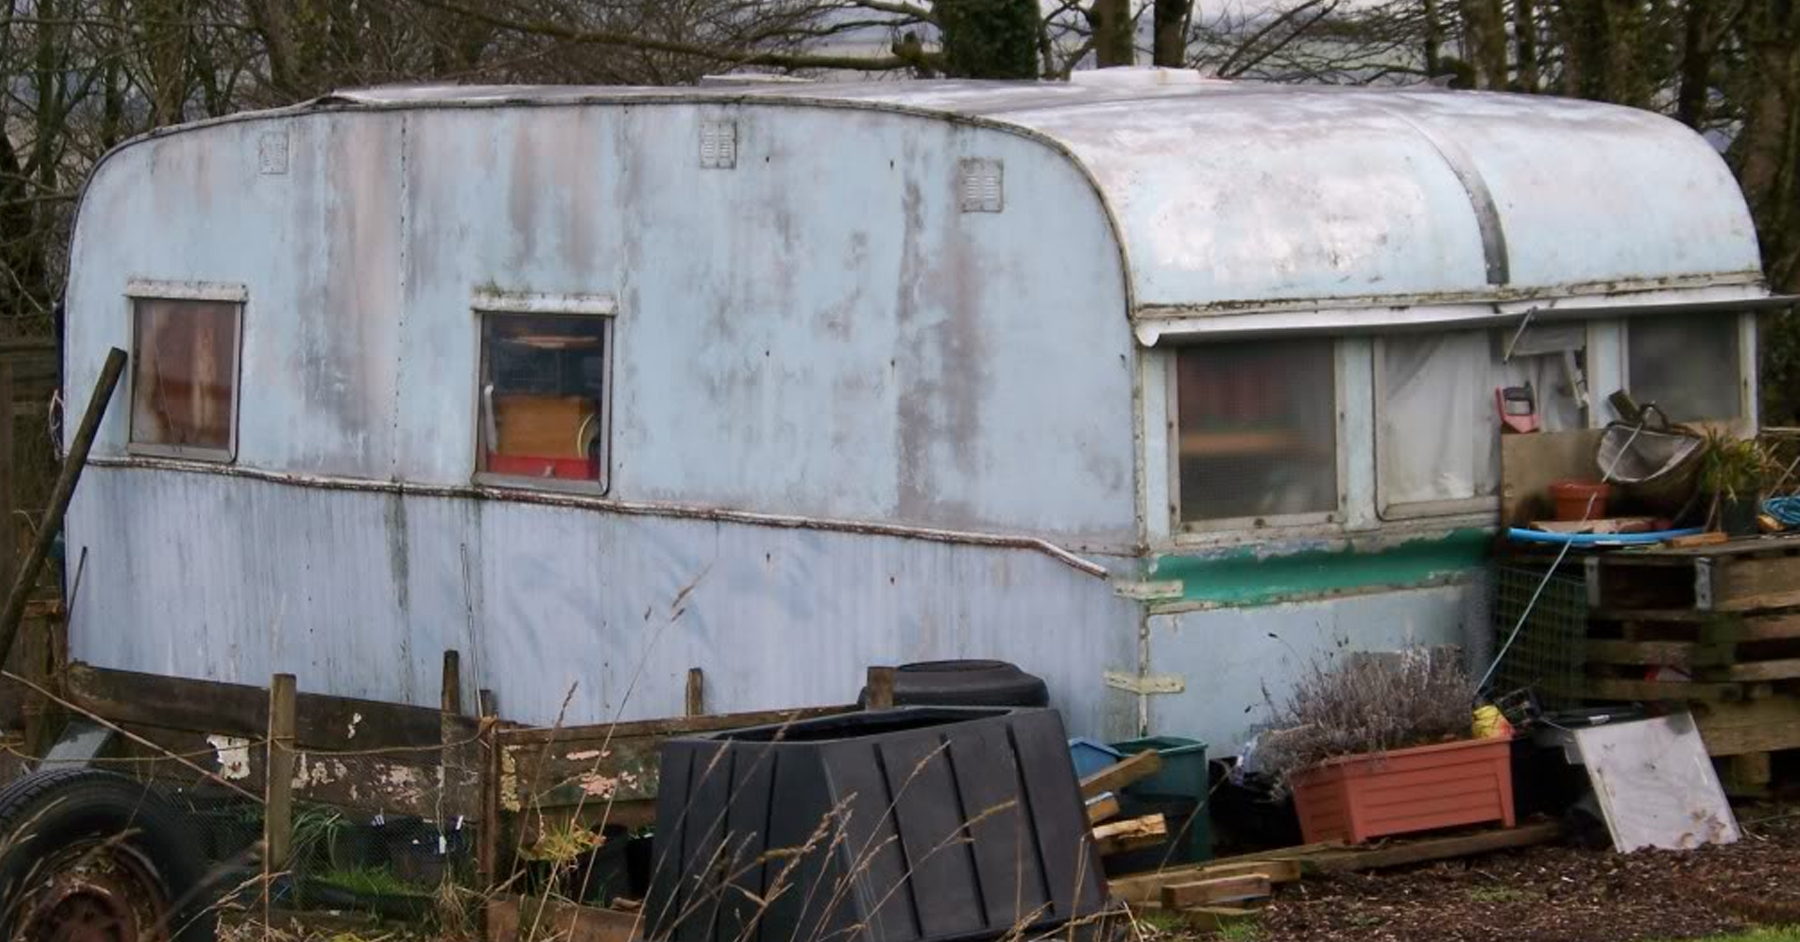 Report st jude dream home looking a little underwhelming for Jude house